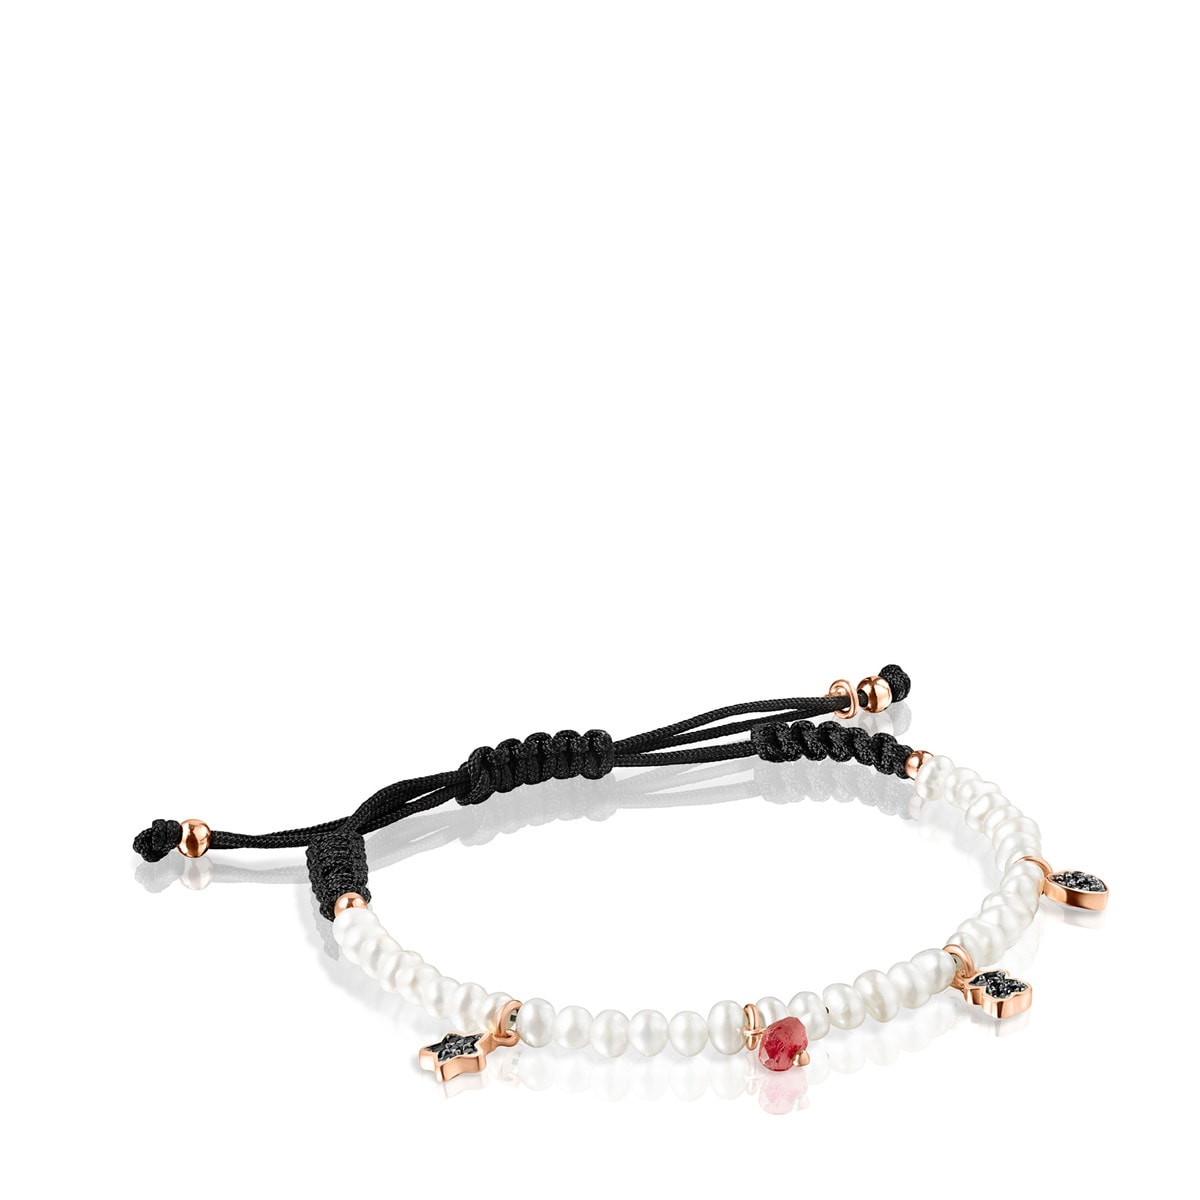 Motif Bracelet with Pearls and black Cord in Rose Gold Vermeil and Gemstones